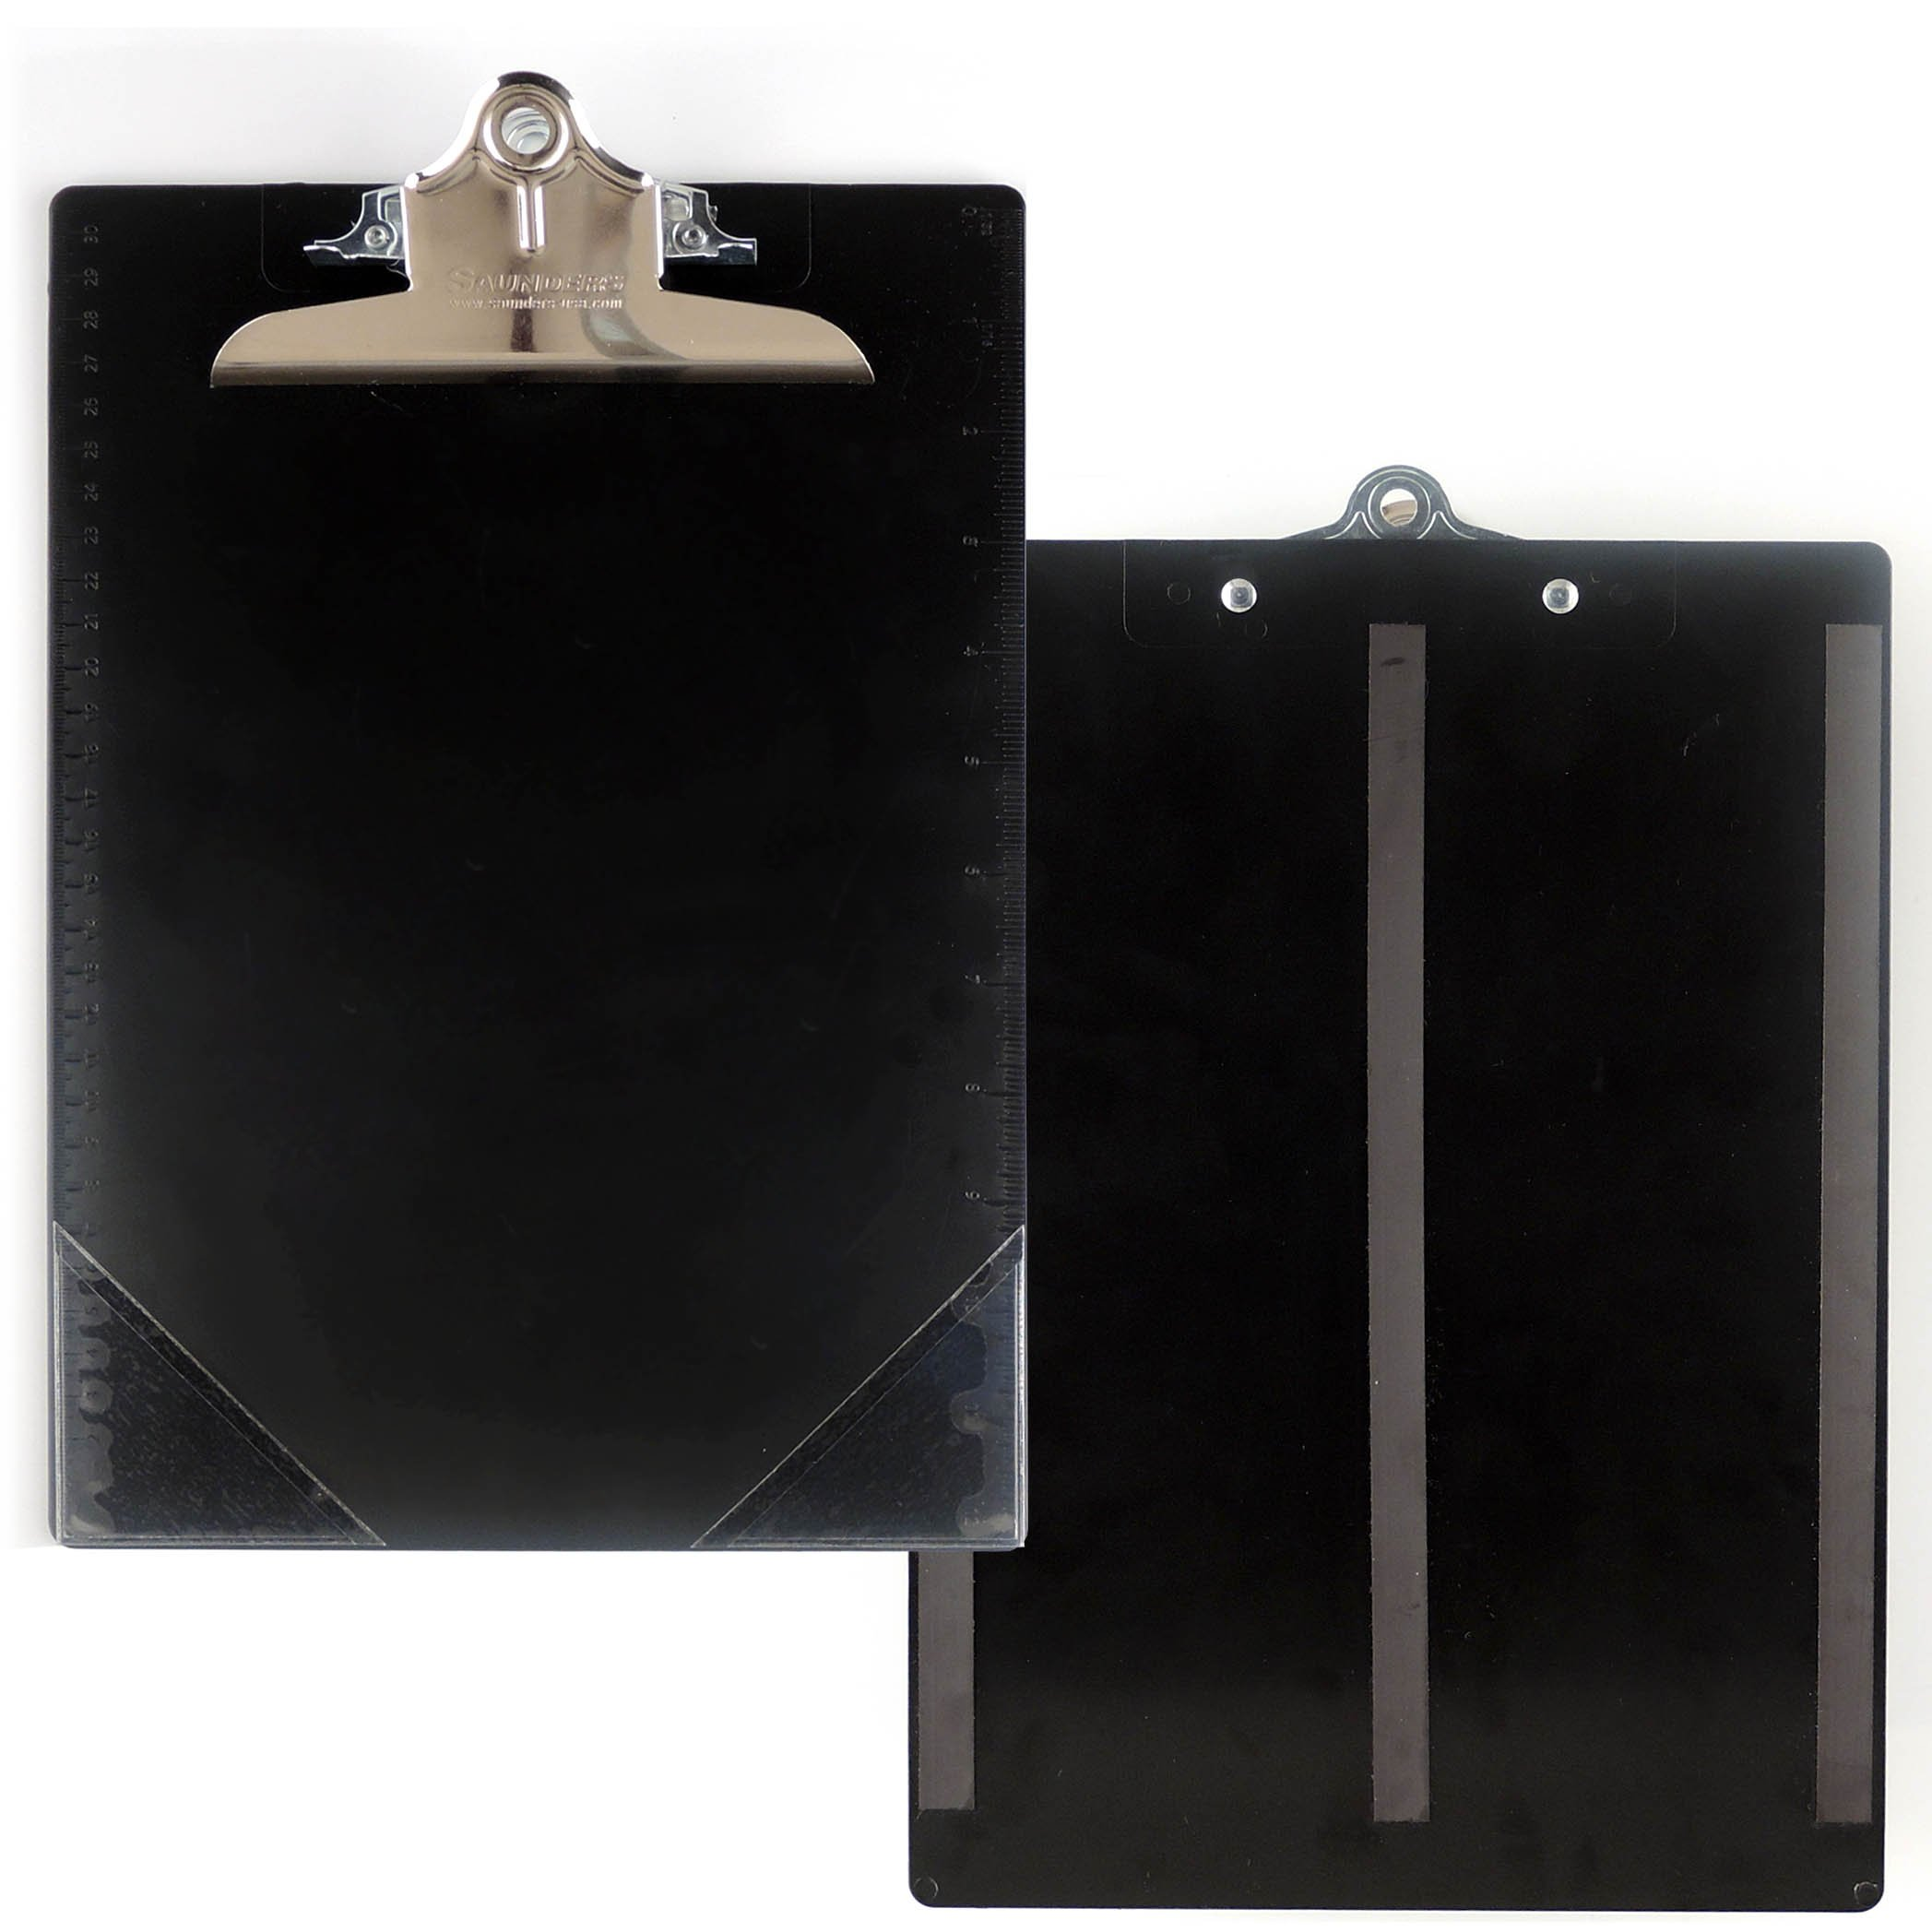 StoreSMART - Magnetic Black Clipboard with Corner Pockets and Rulers - 50-Pack - CLIPMC-BK-50